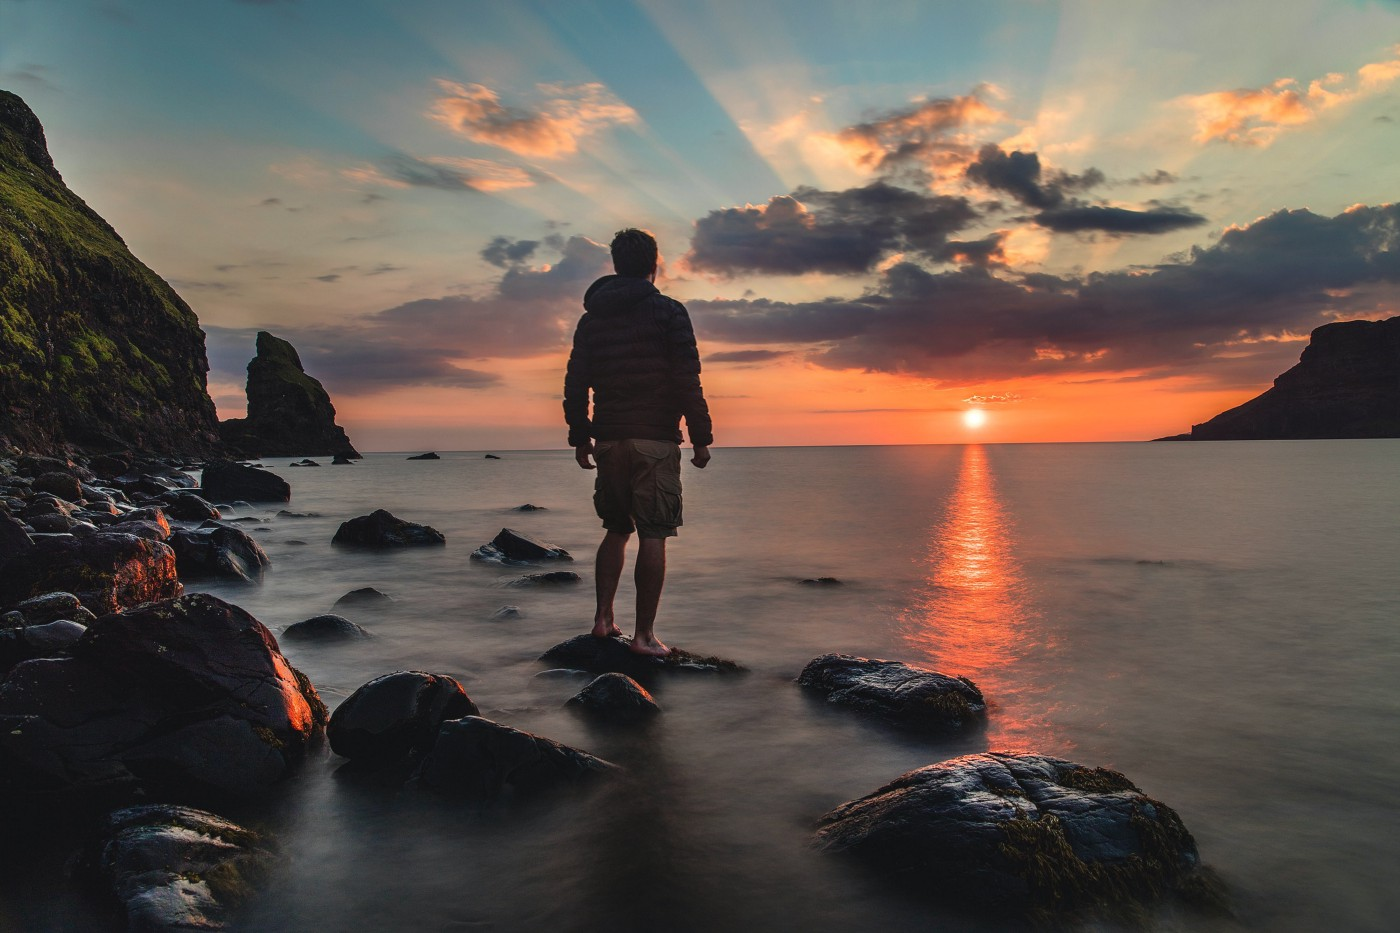 Man standing on rocks in the water looking out at the sunset above the ocean.